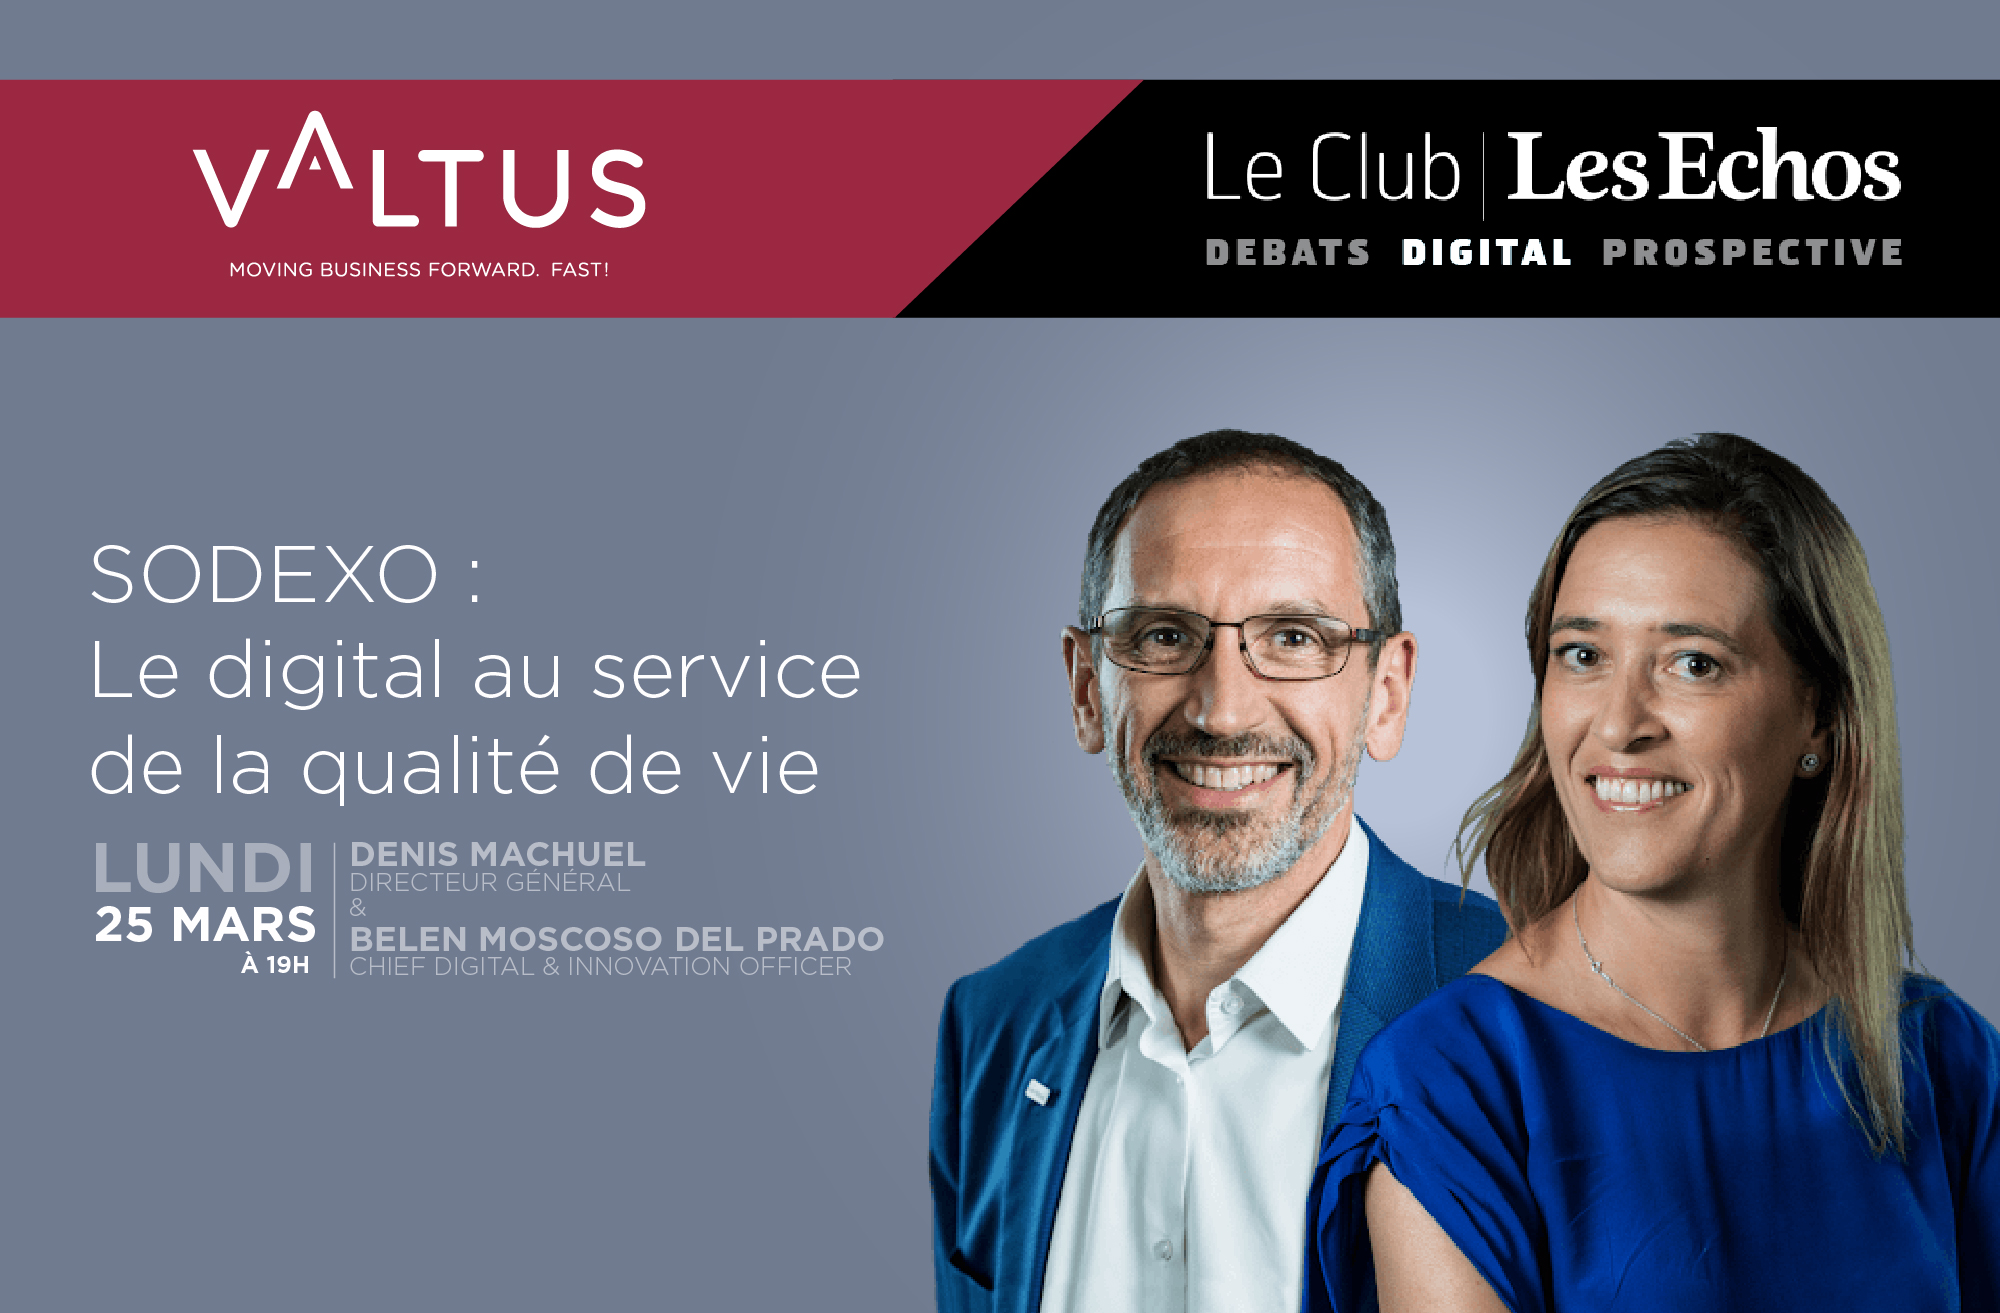 Club Les Echos Digital Sodexo - Valtus Management de transition